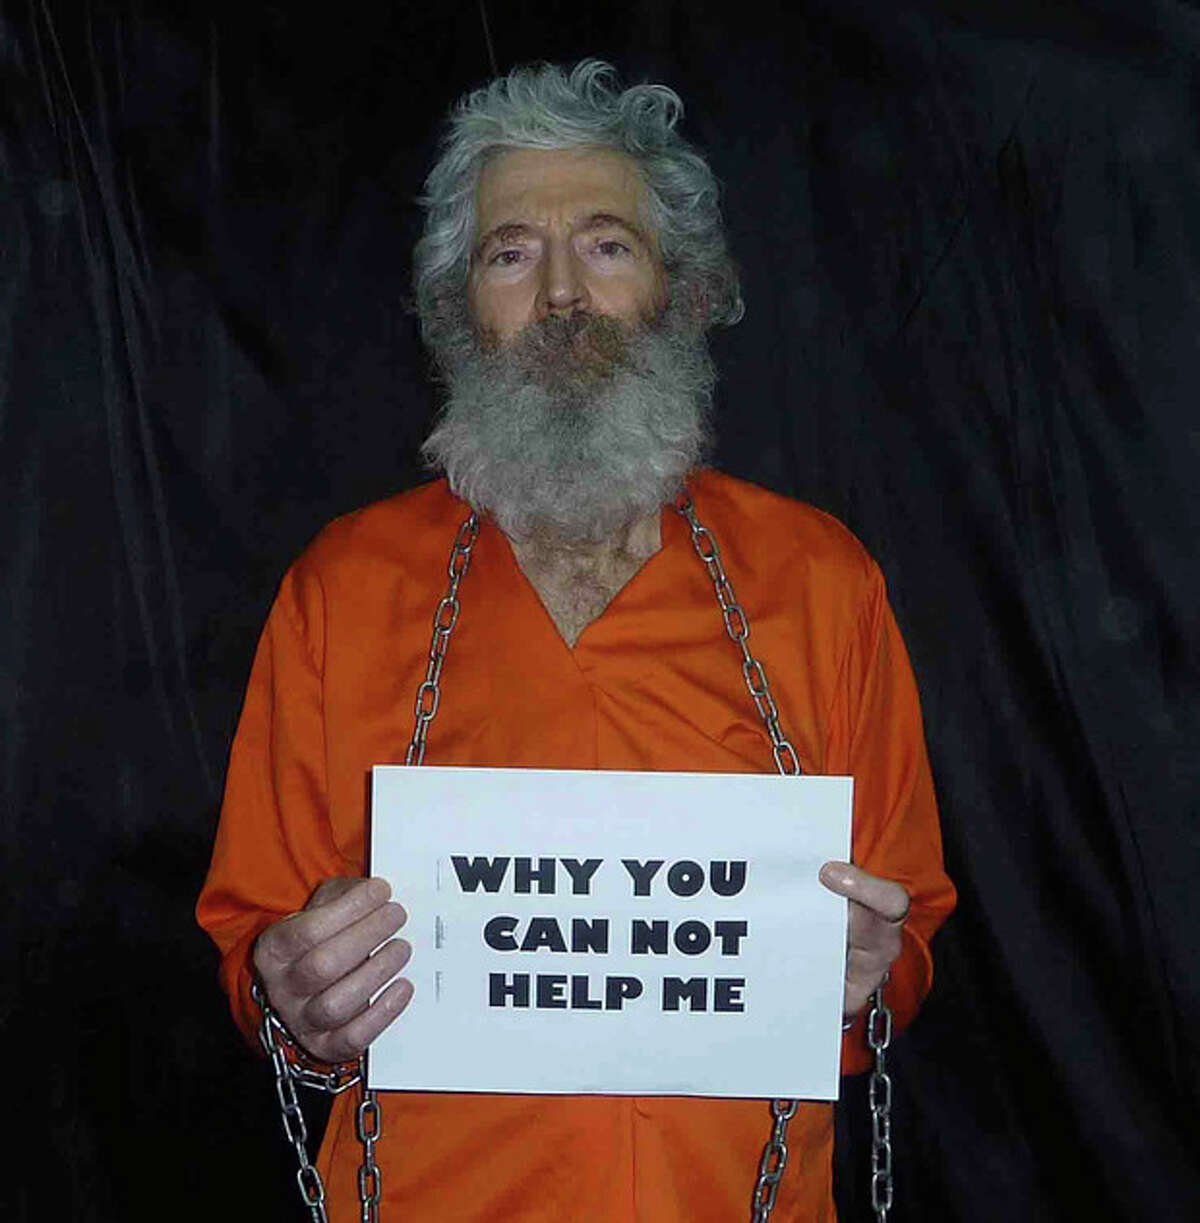 This undated handout photo provided by the family of Robert Levinson, shows retired-FBI agent Robert Levinson in a photo the family received in April 2011. In March 2007, Levinson flew to Kish Island, an Iranian resort. Days later after a meeting with an admitted killer, he vanished. For years the U.S. has publicly described him as a private citizen who was traveling on private business. However, an Associated Press investigation reveals that Levinson was working for the CIA. In a breach of the most basic CIA rules, a team of analysts with no authority to run spy operations, paid Levinson to gather information. But even after the White House, FBI and State Department officials learned of Levinson's CIA ties, the official story remained unchanged. There has been no hint of Levinson's whereabouts since his family received this photo in 2011 and even Iranian President Hassan Rouhani says he has no information about Levinson's whereabouts. (AP Photo/Levinson Family)